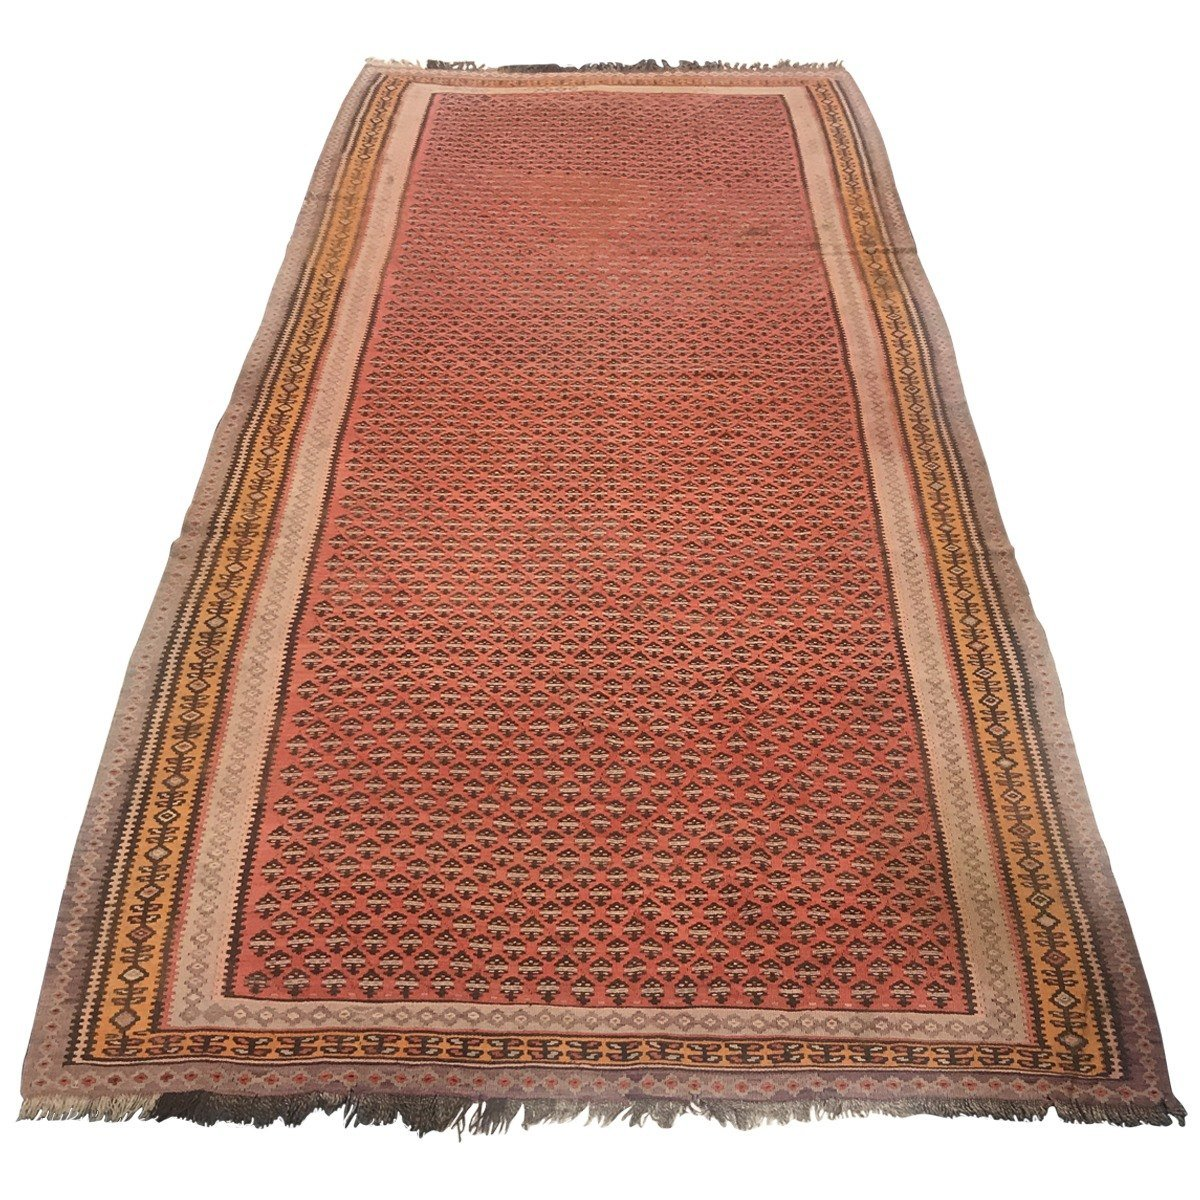 Woven Concepts 1900 Persian Malayer Wool Rug